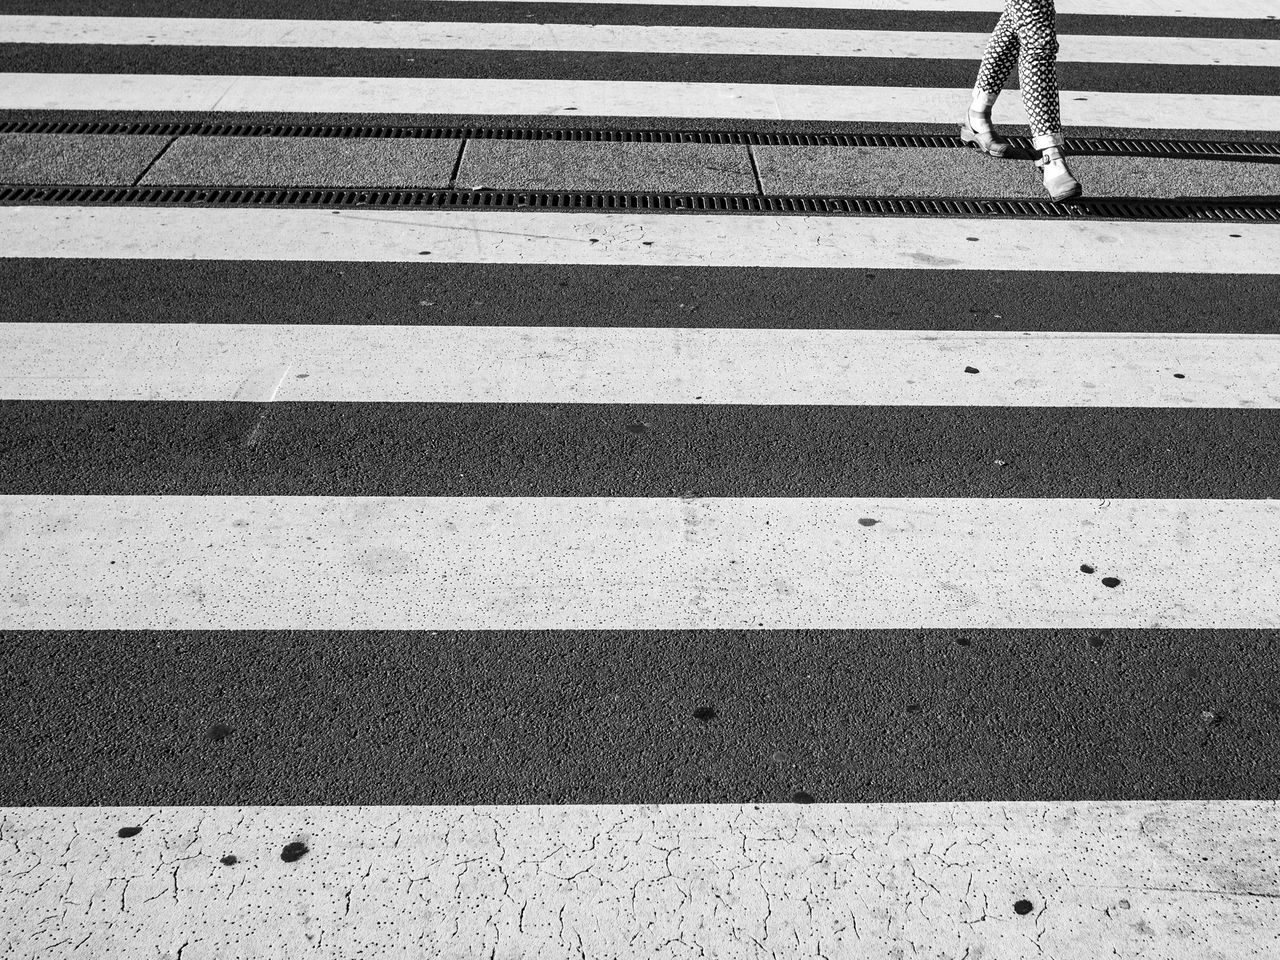 Lines will be lines Black And White Crosswalk Feet Human Body Part Low Section Monochrome No People One Person Outdoors People Road Road Marking The City Light Transportation Unrecognizable Person Walking Zebra Crossing